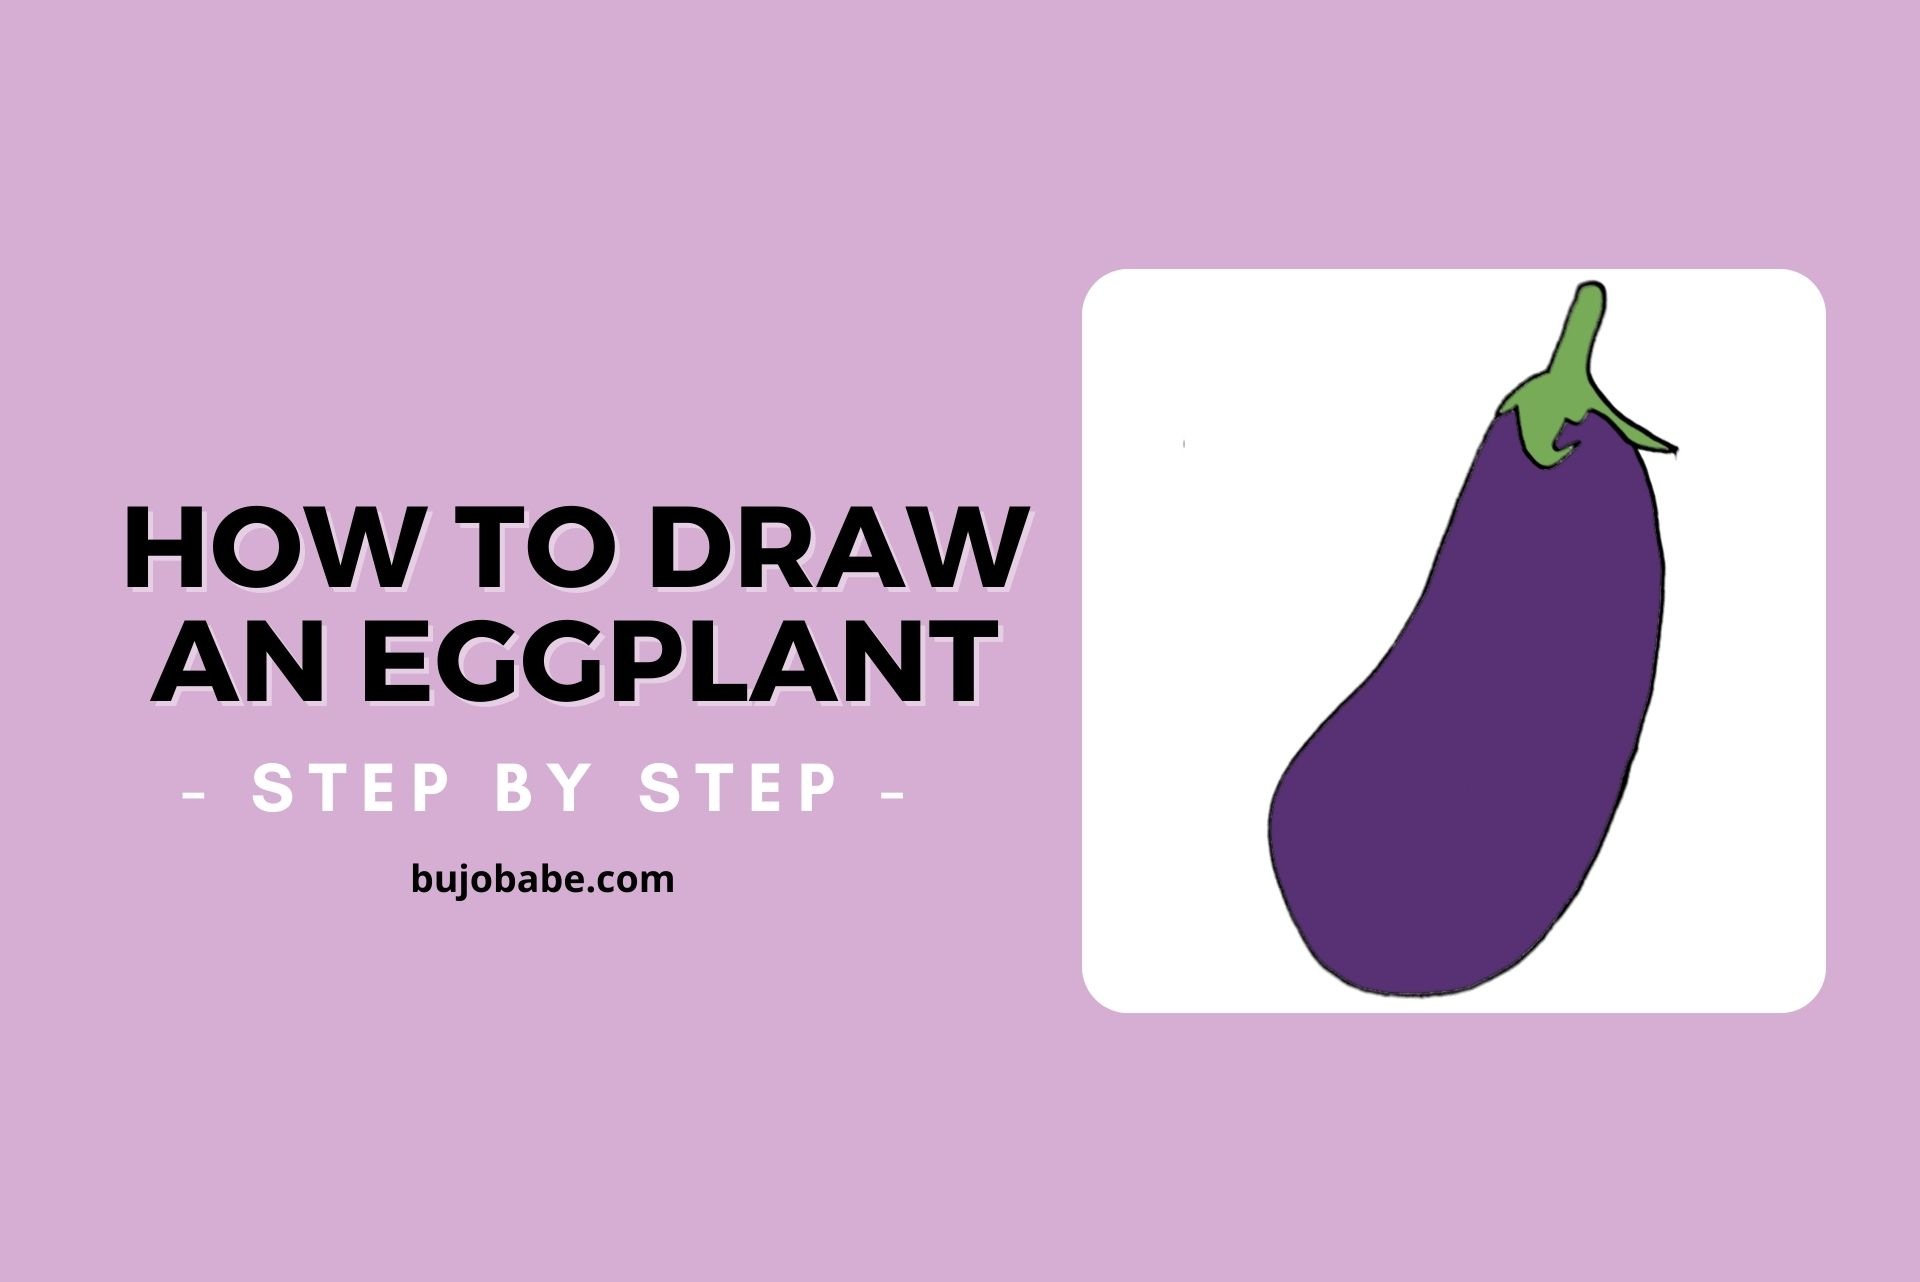 how to draw an eggplant step by step